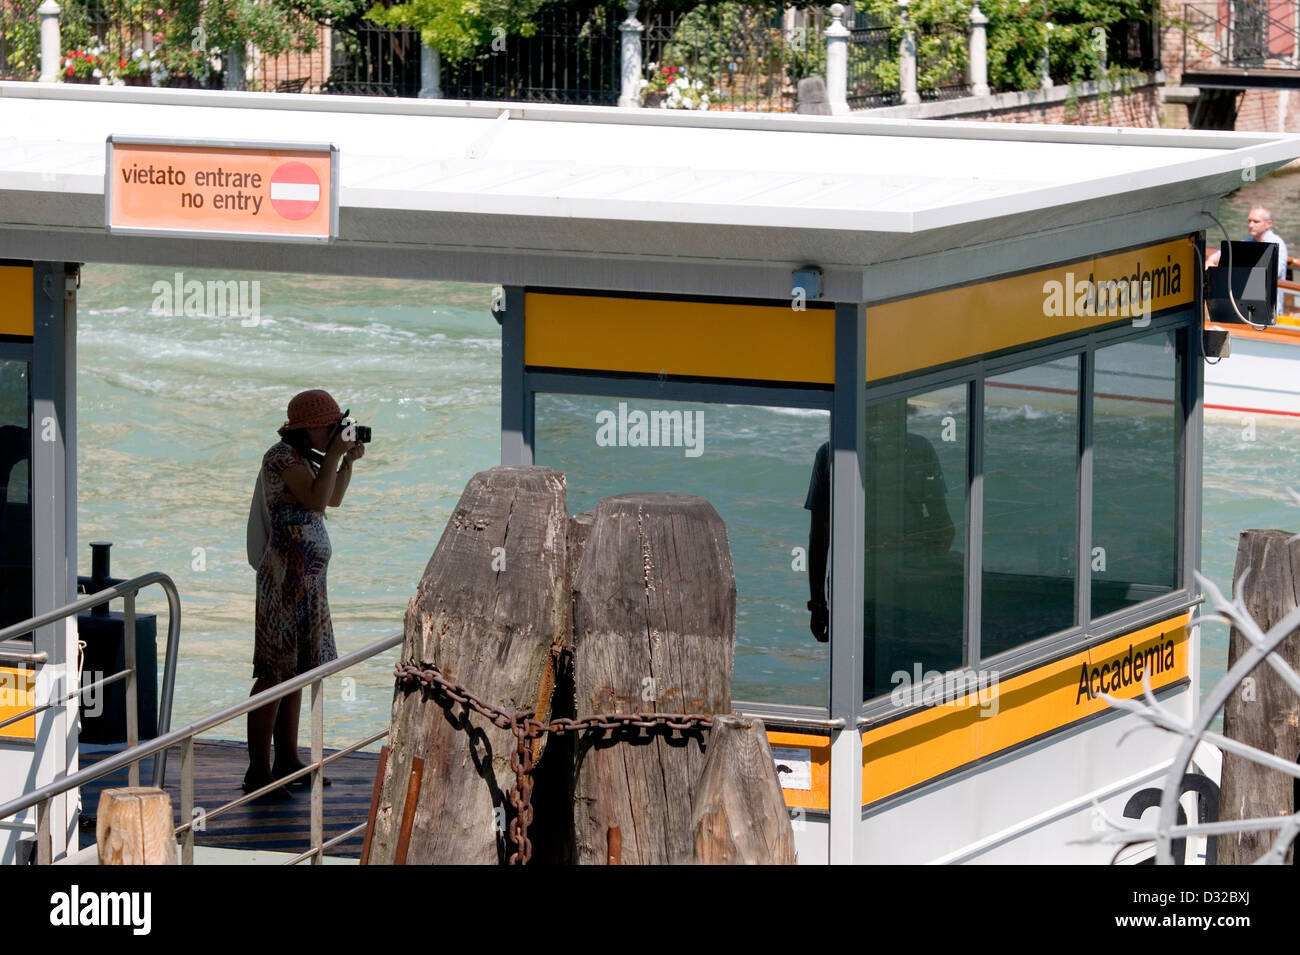 A tourist taking a picture on the Accademia vaporetto (water-bus) stop, Dorsoduro, Venice, Italy. - Stock Image